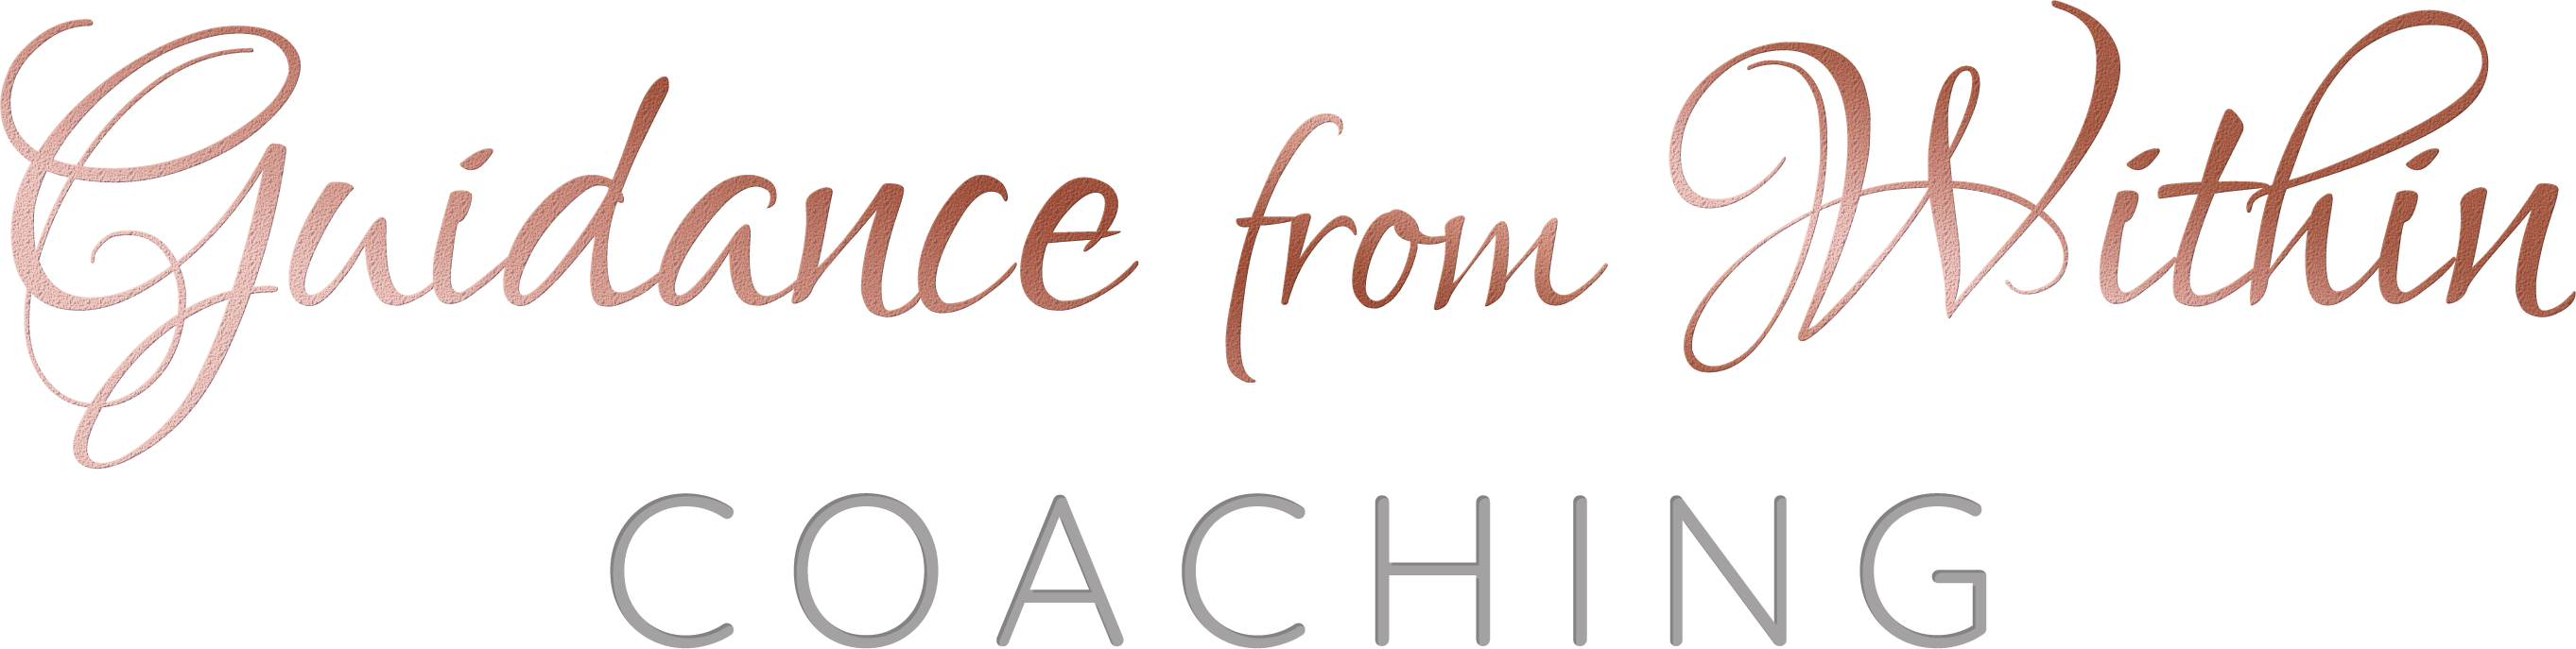 Guidance from within Coaching